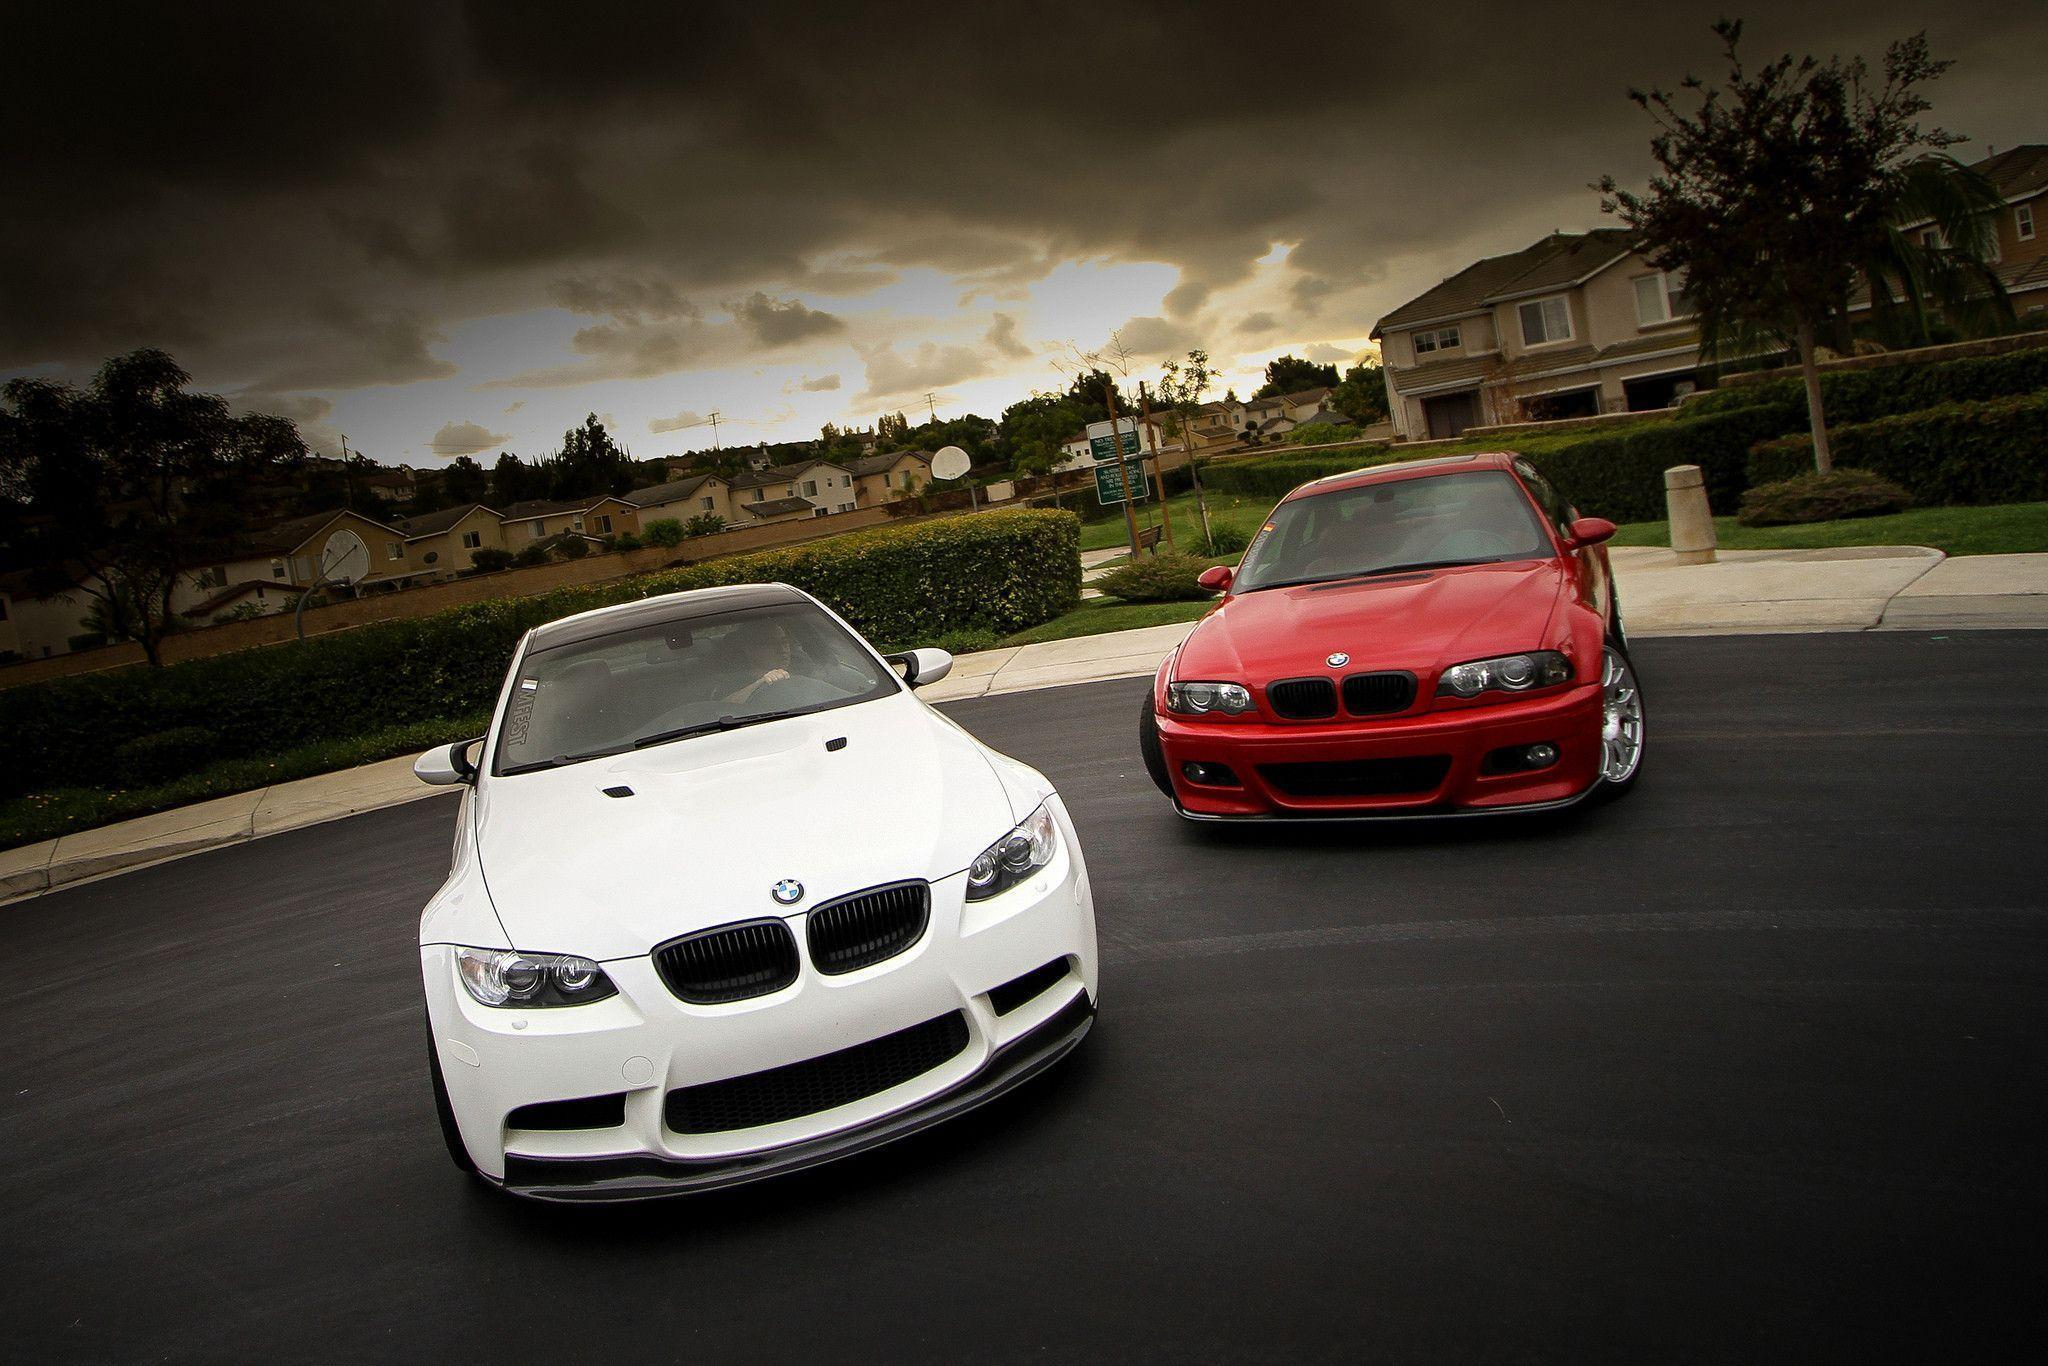 Wallpapers bmw, m3, e46, e92, red, white, bmw, white, red, front